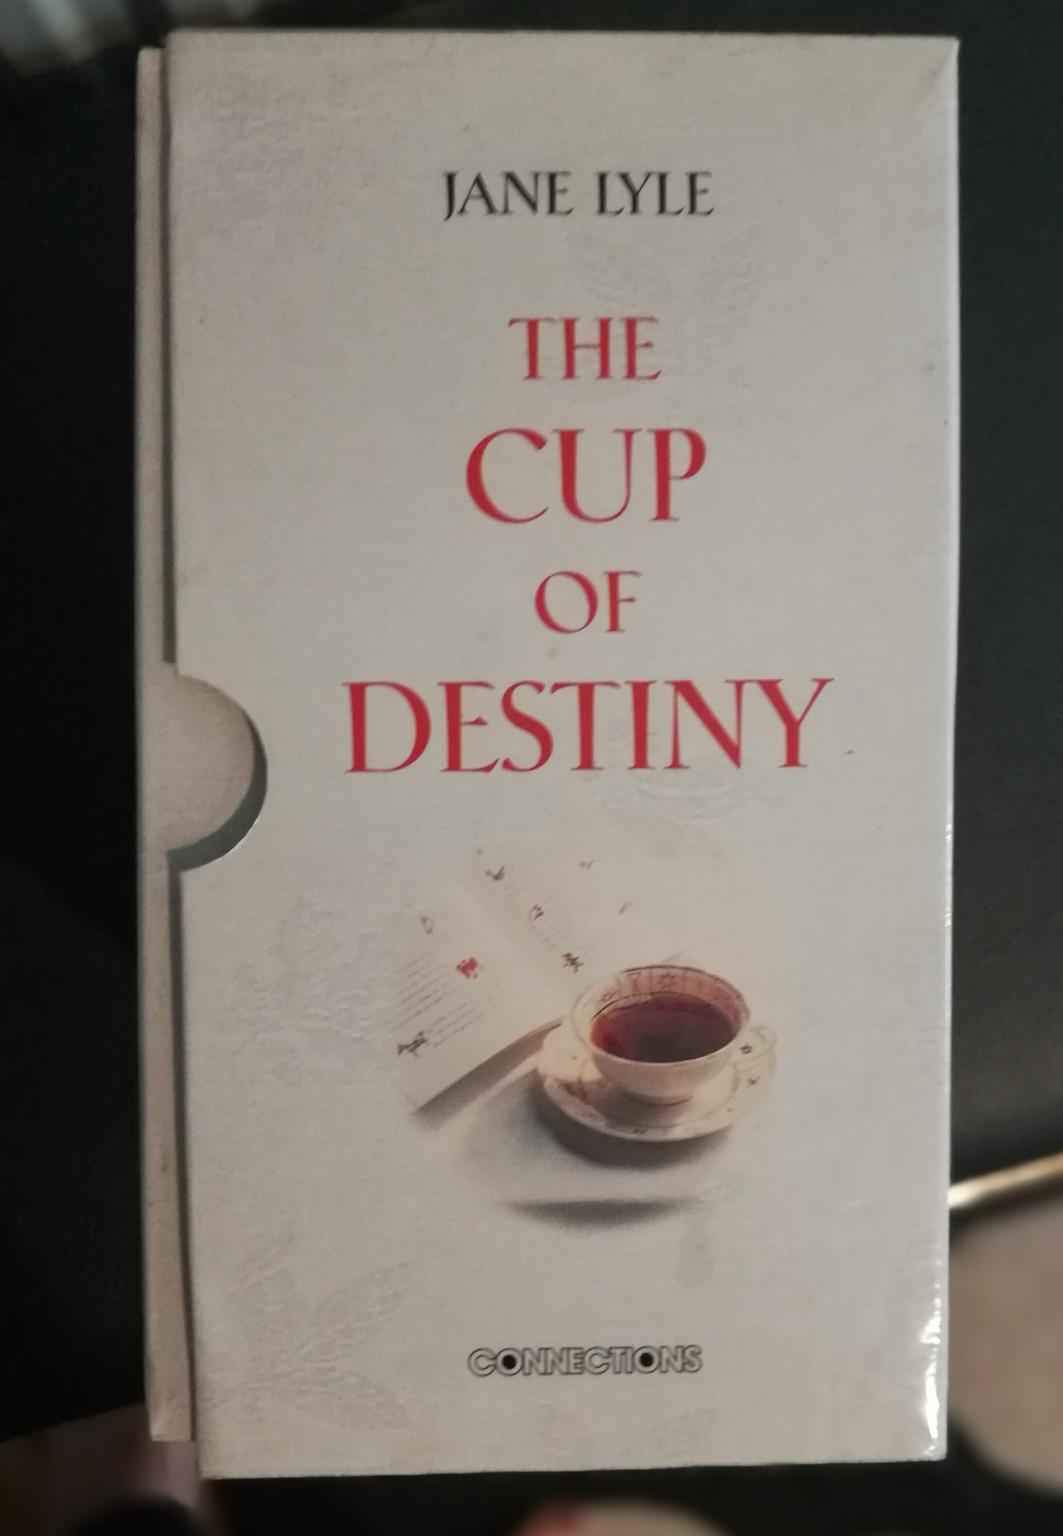 The The Cup of Destiny